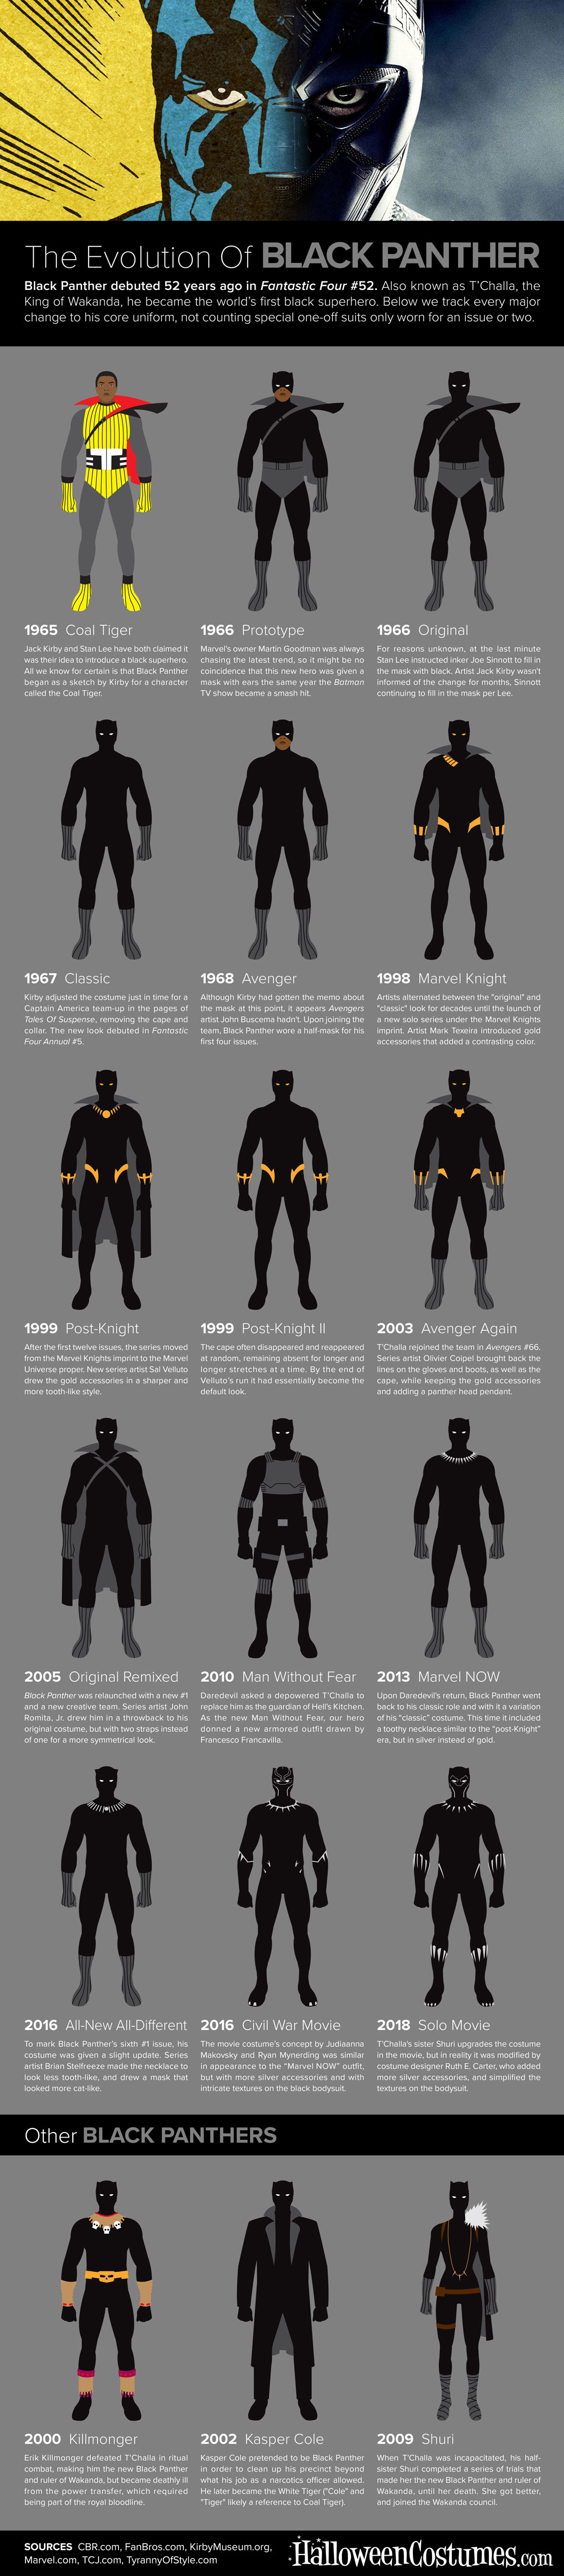 The Evolution of Black Panther